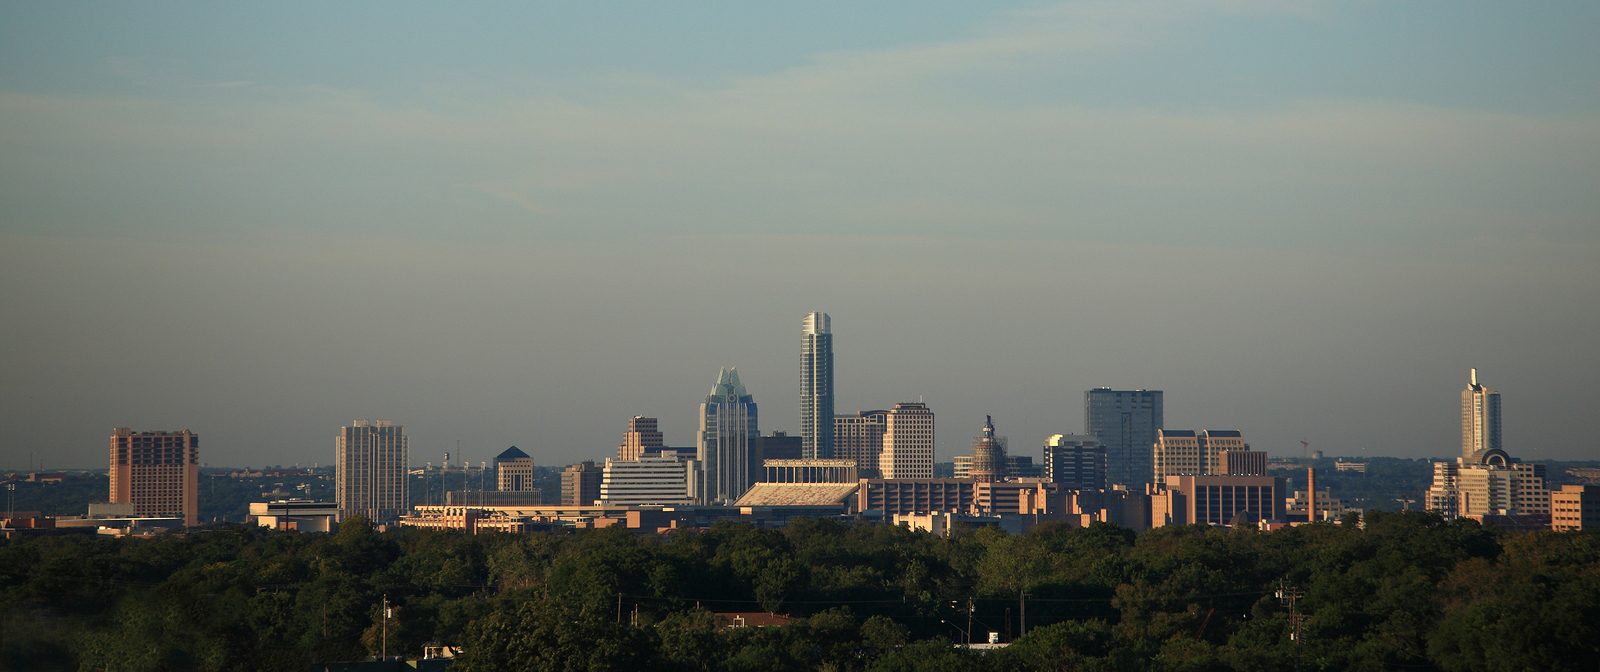 Buildings and skyline of the Texas capitol city